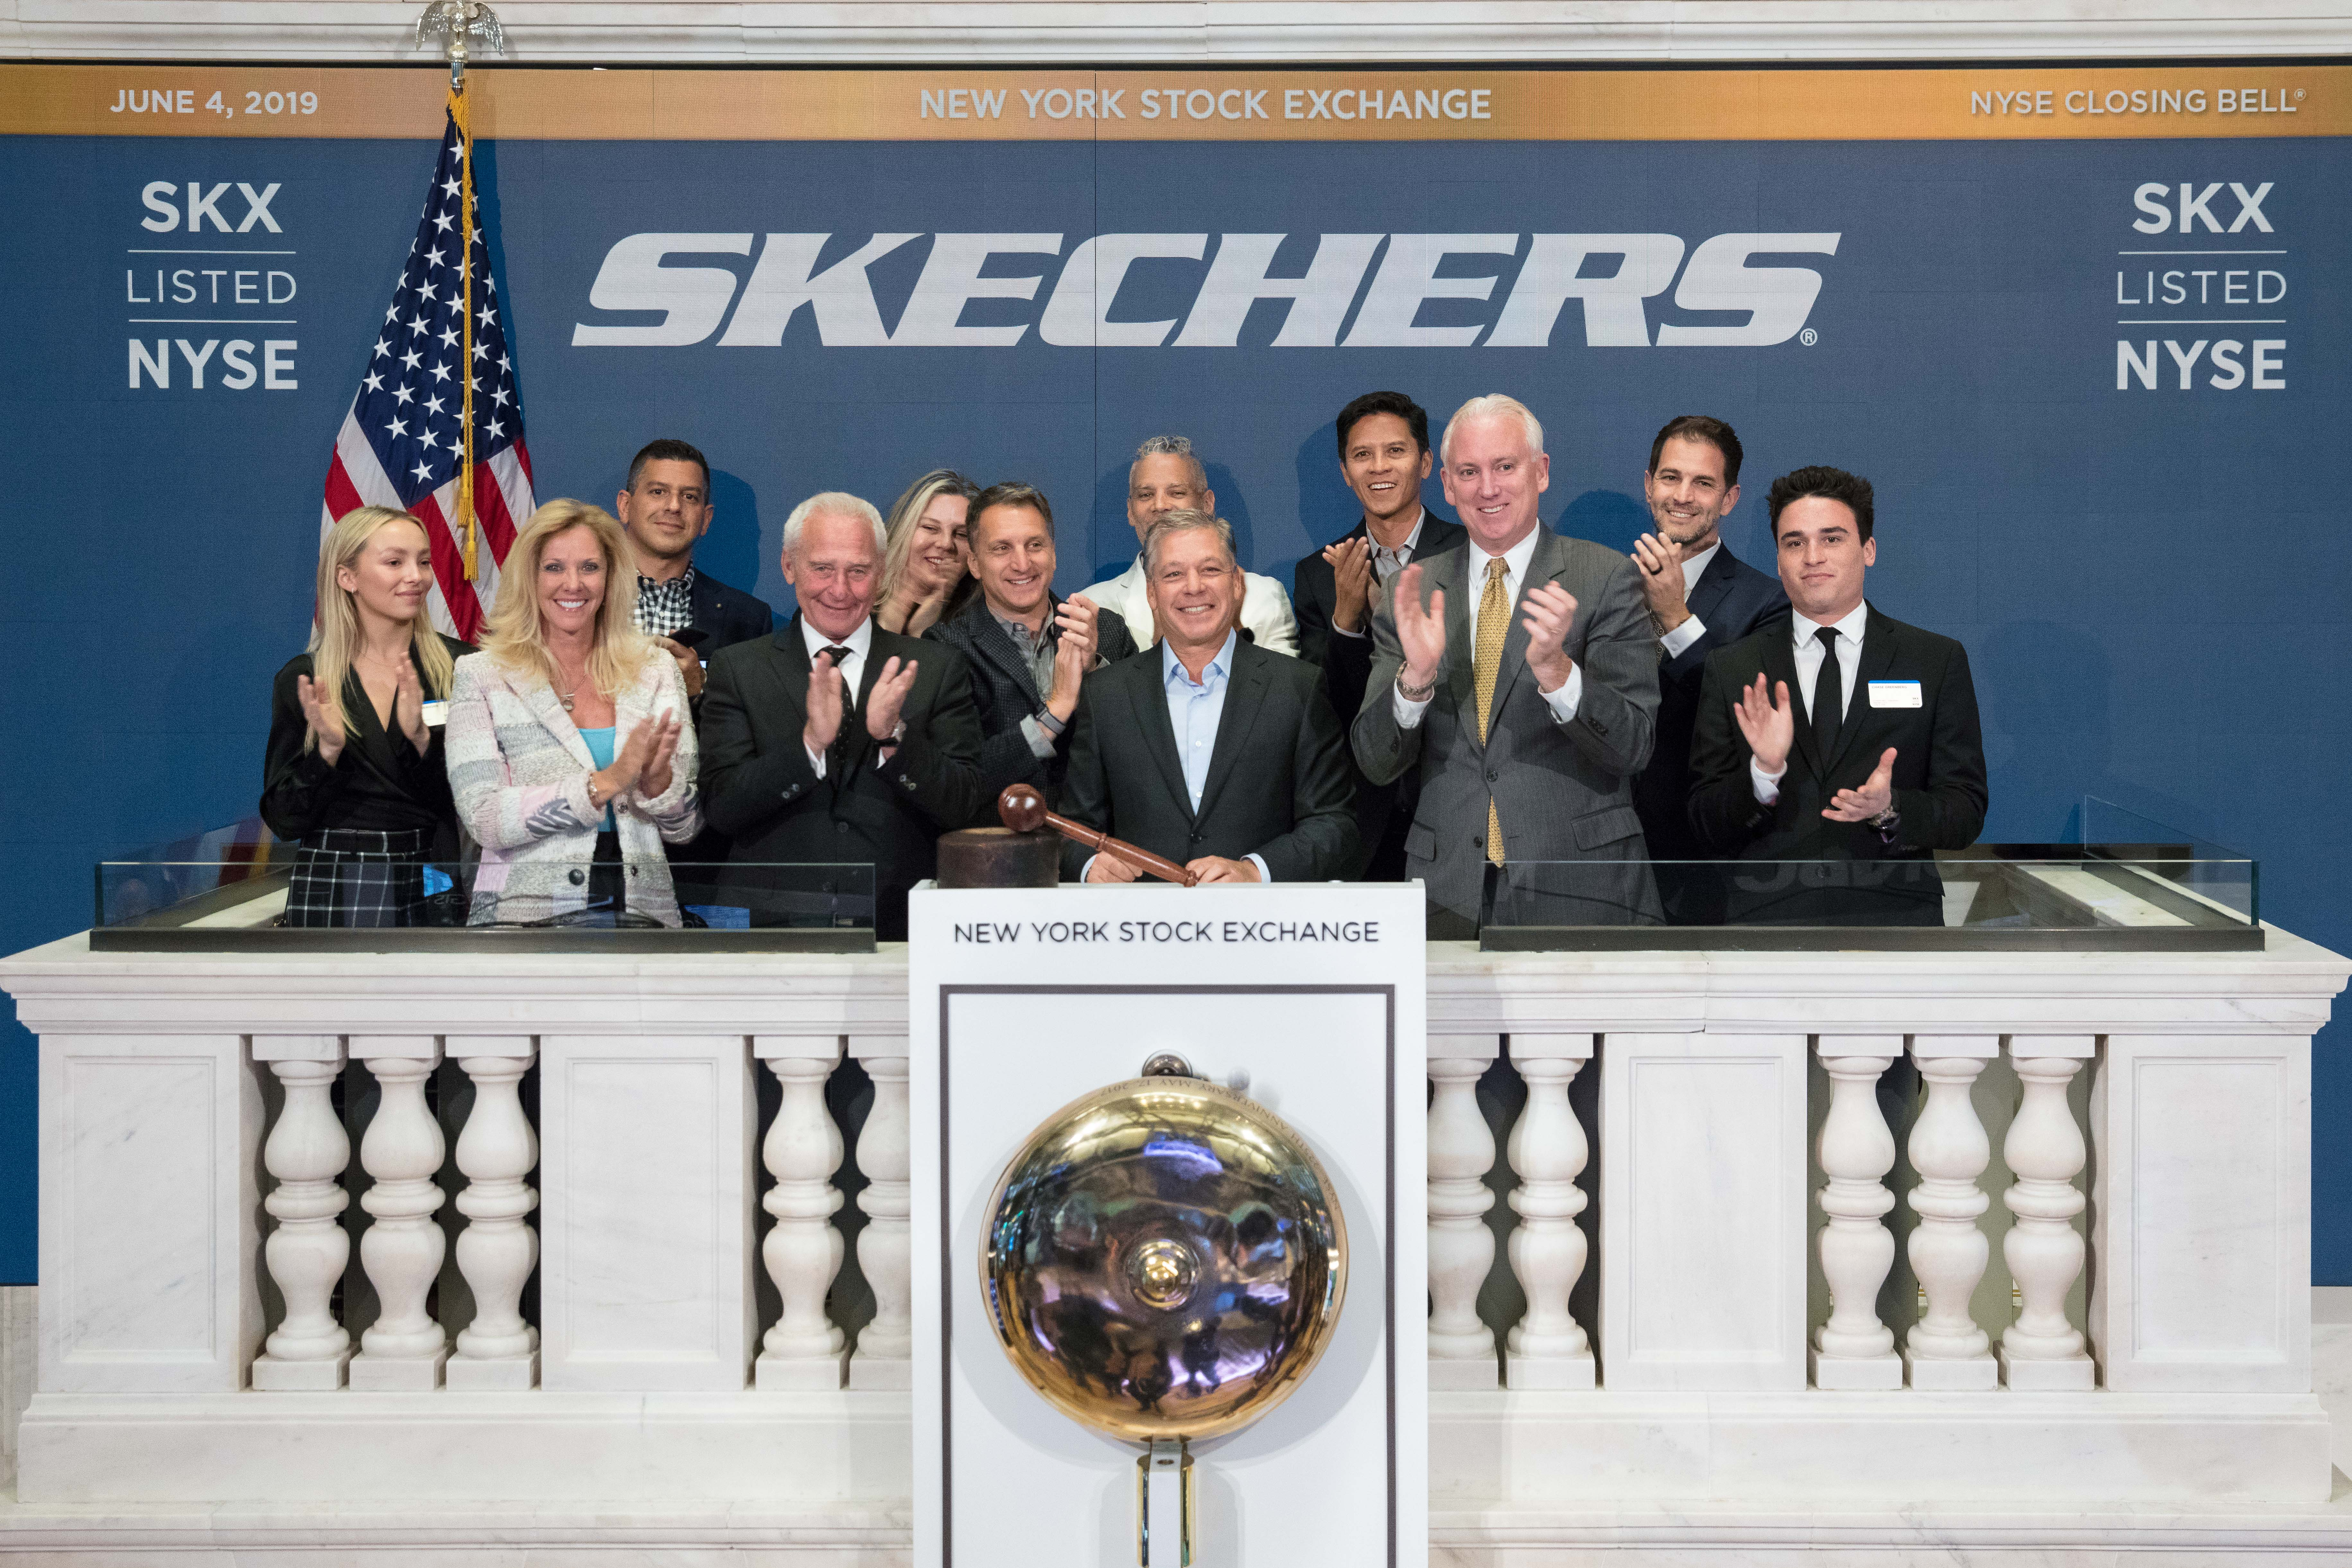 The New York Stock Exchange Skechers U.S.A. (NYSE: SKX) in celebration of their 20th Anniversary of Listing. Michael Greenberg, President, joined by Jim Byrne, NYSE Head of U.S. Listings, rings The Closing Bell®.